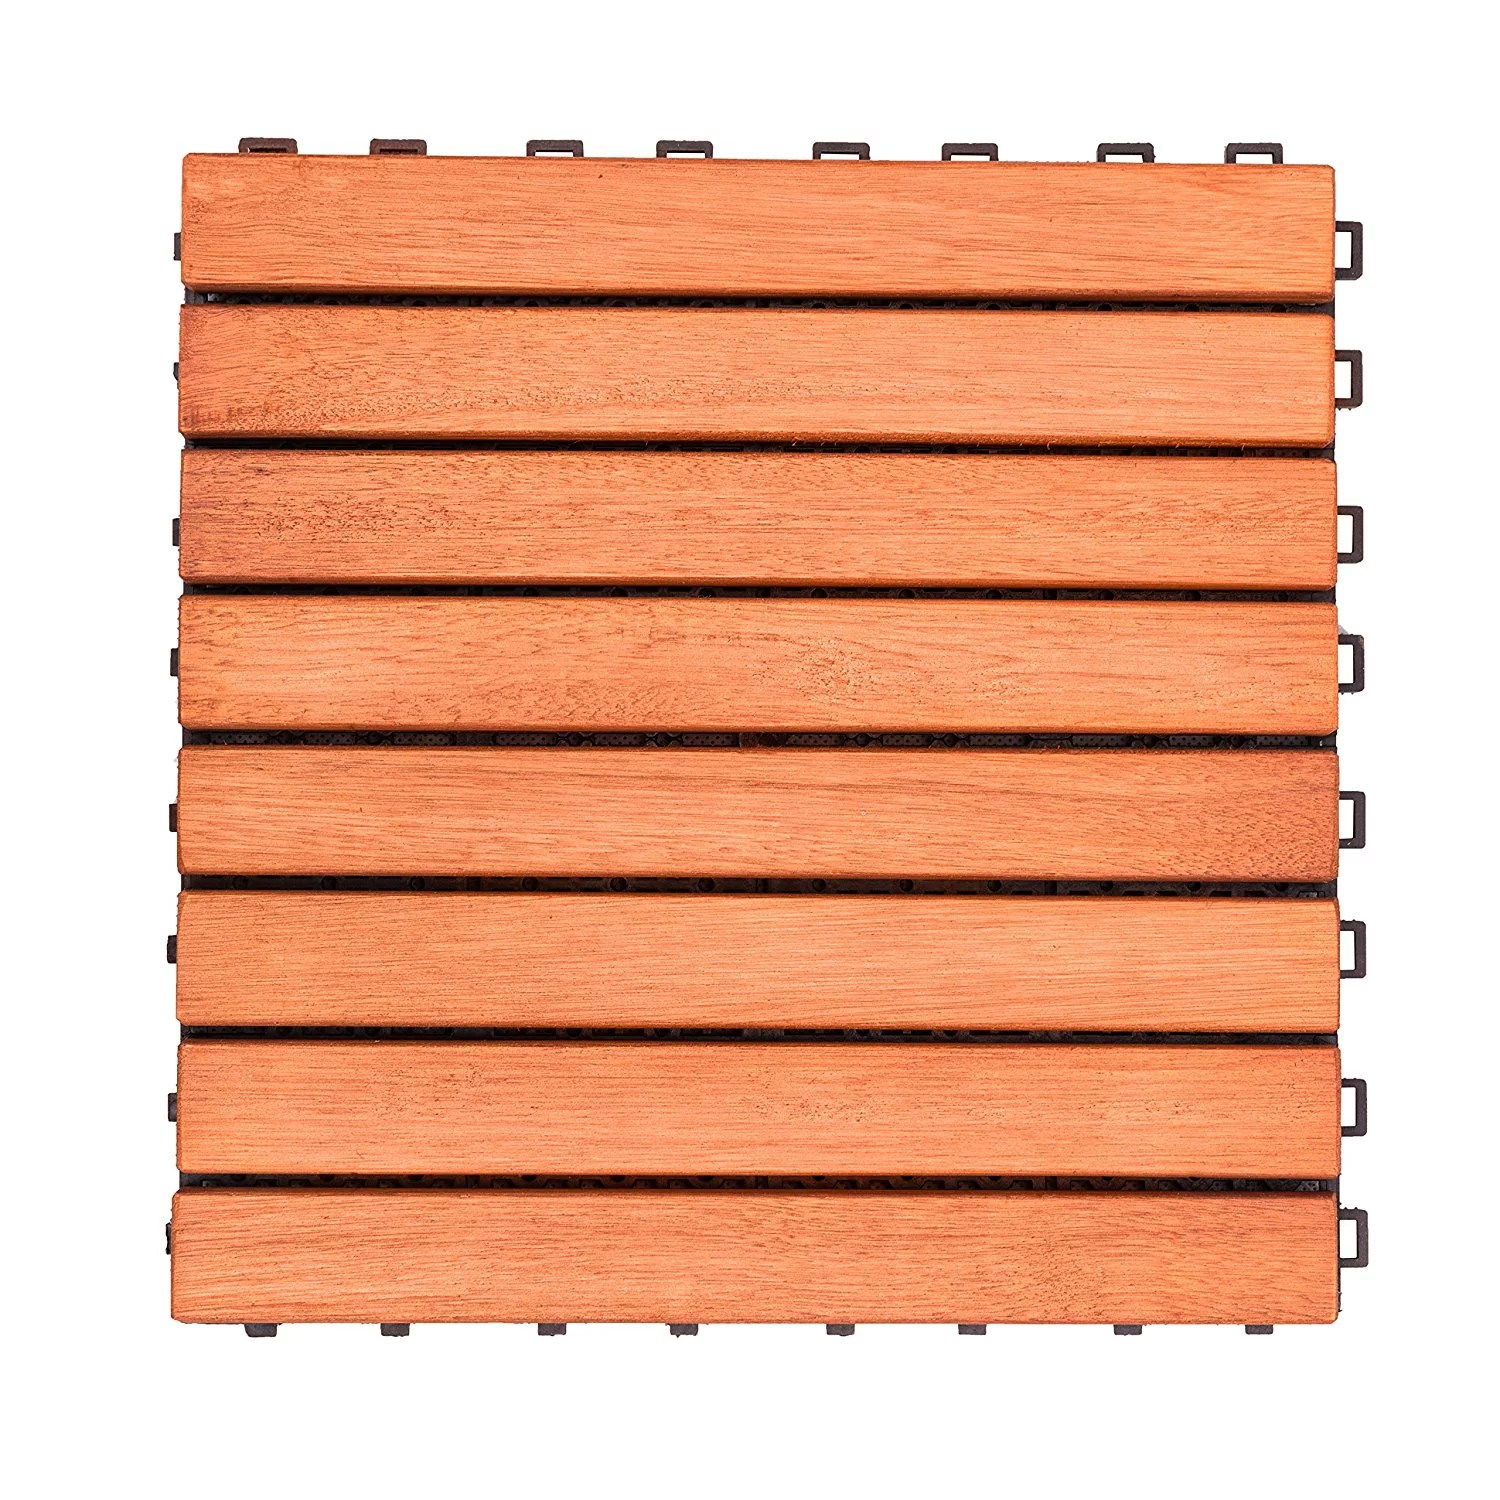 Interlocking Deck Tiles Outdoor Patio 8 Slat Eucalyptus Interlocking Deck Tile Set Of 10 Tiles